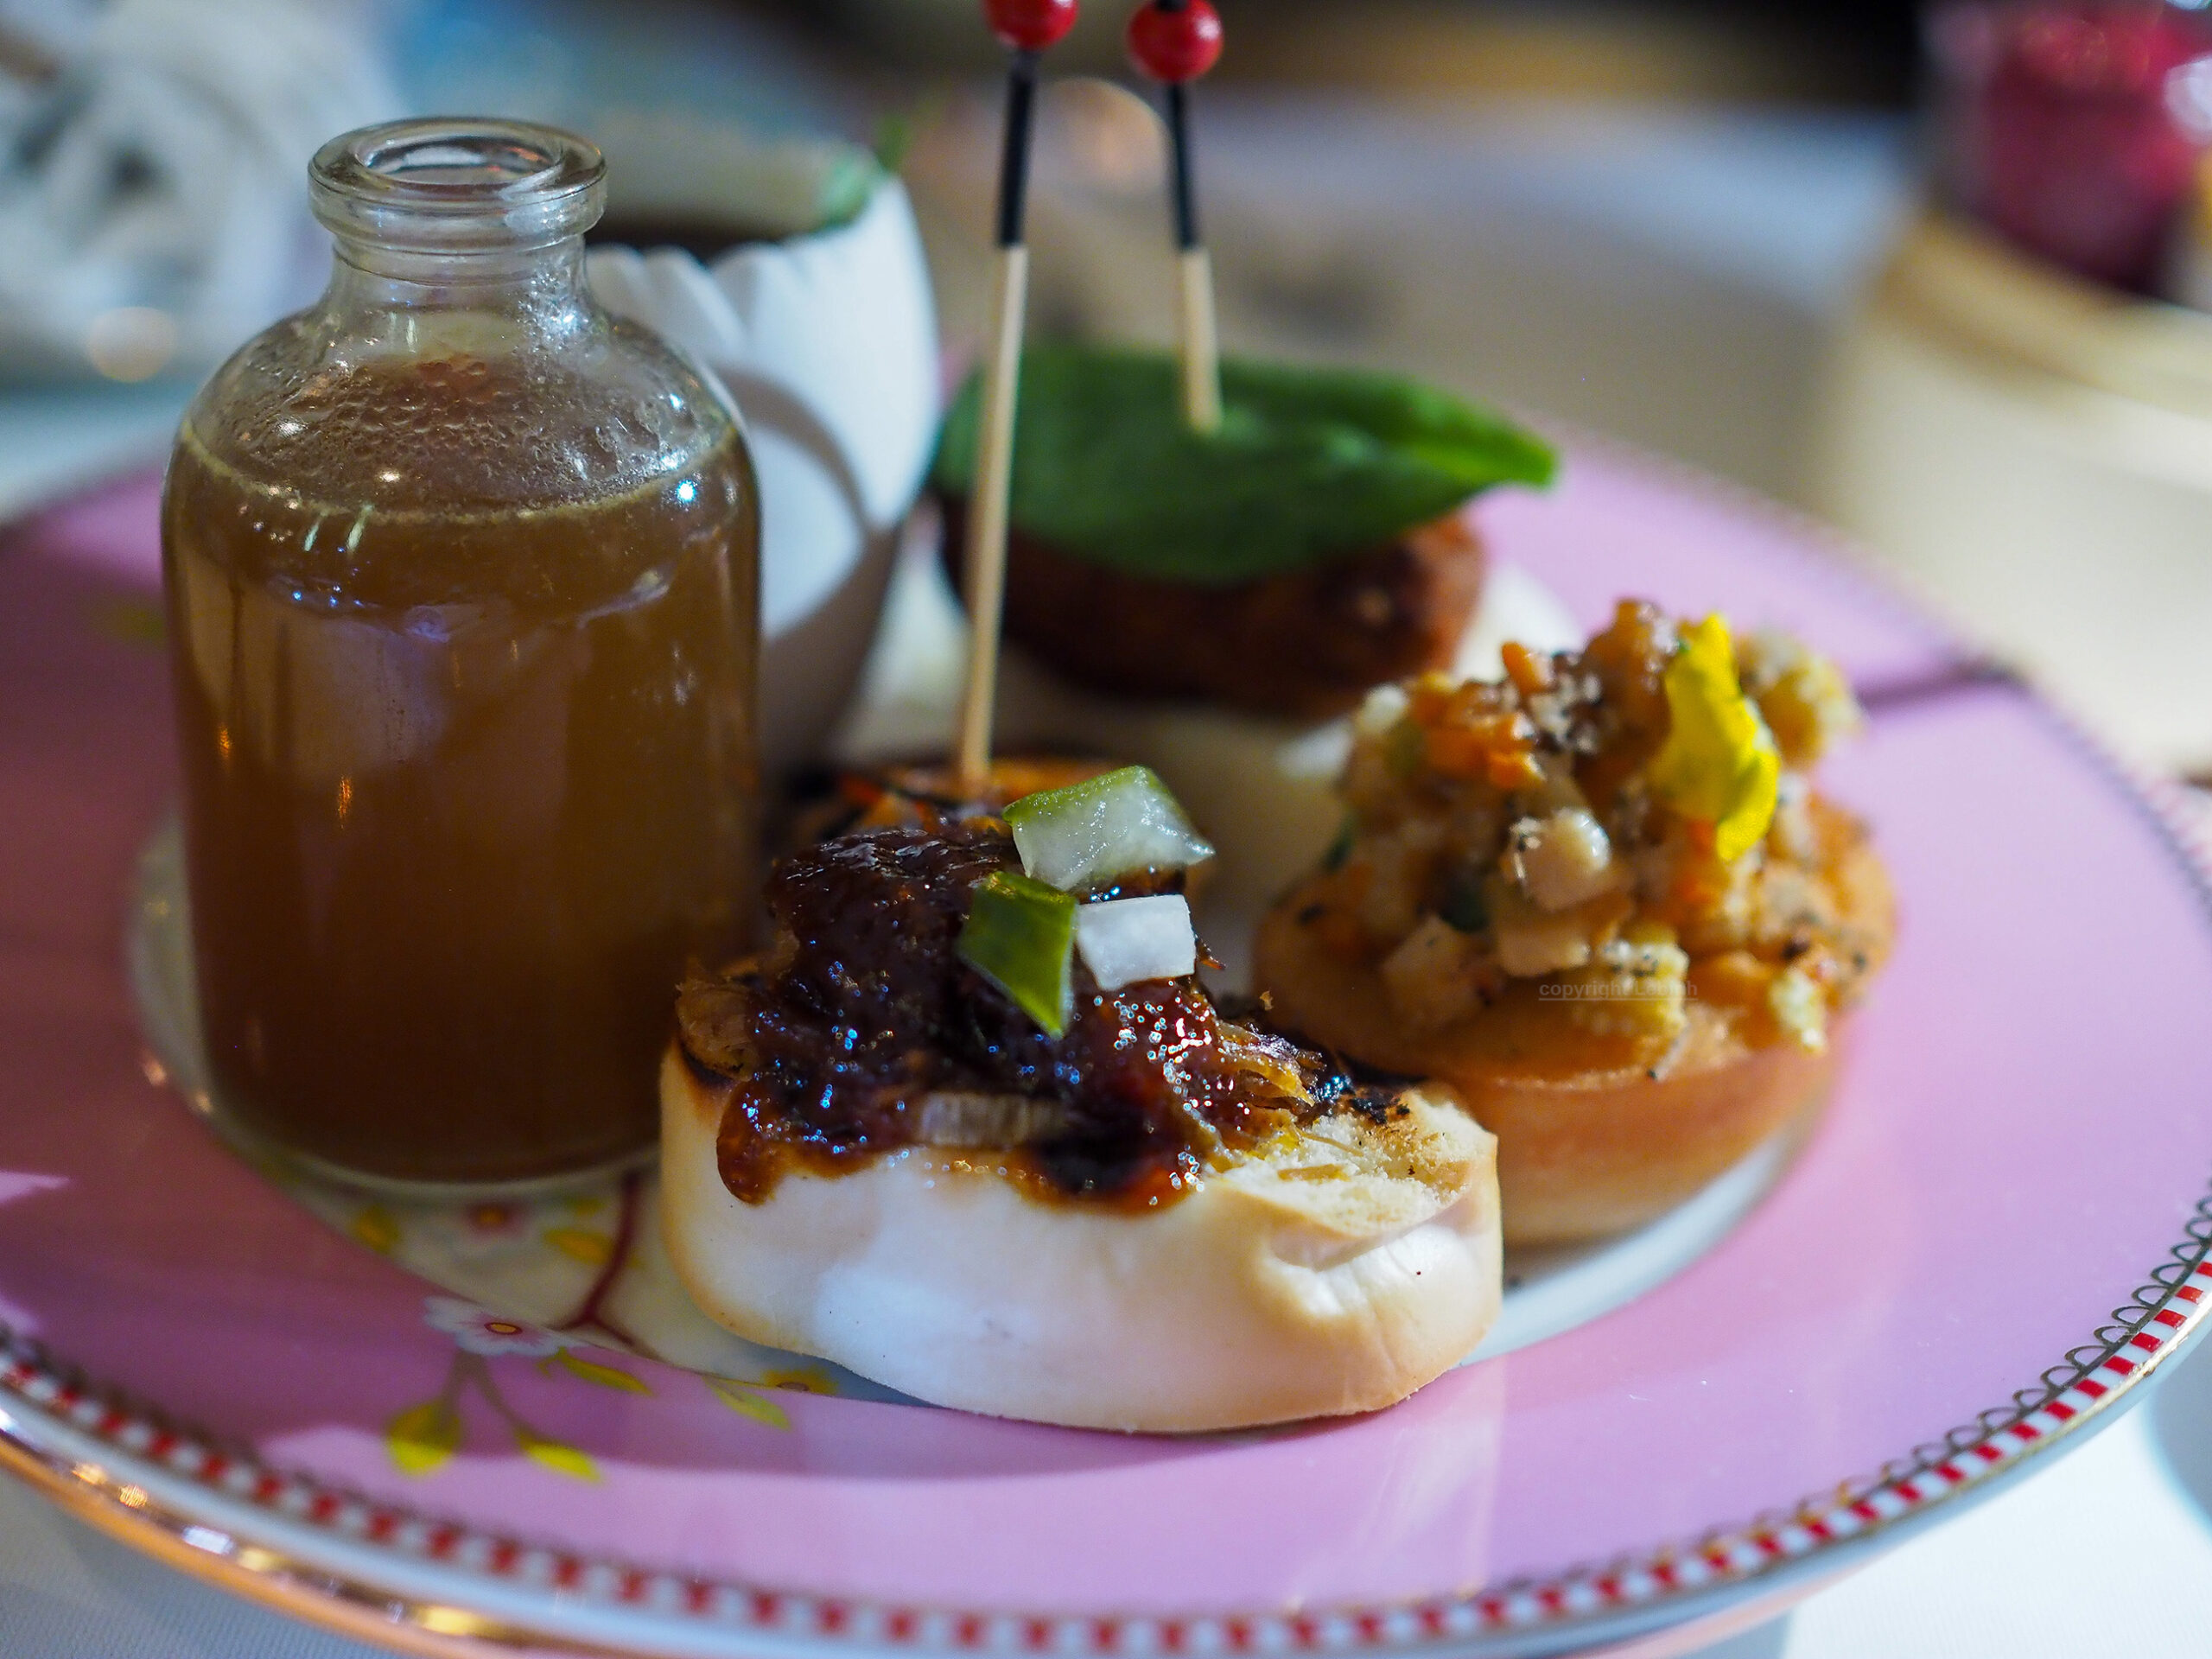 Chai' Bao Sliders, bao with crispy duck, bao chopped vegetables, prawns on toast, Chinese tea egg, and finally the potion of 'eternal youth'